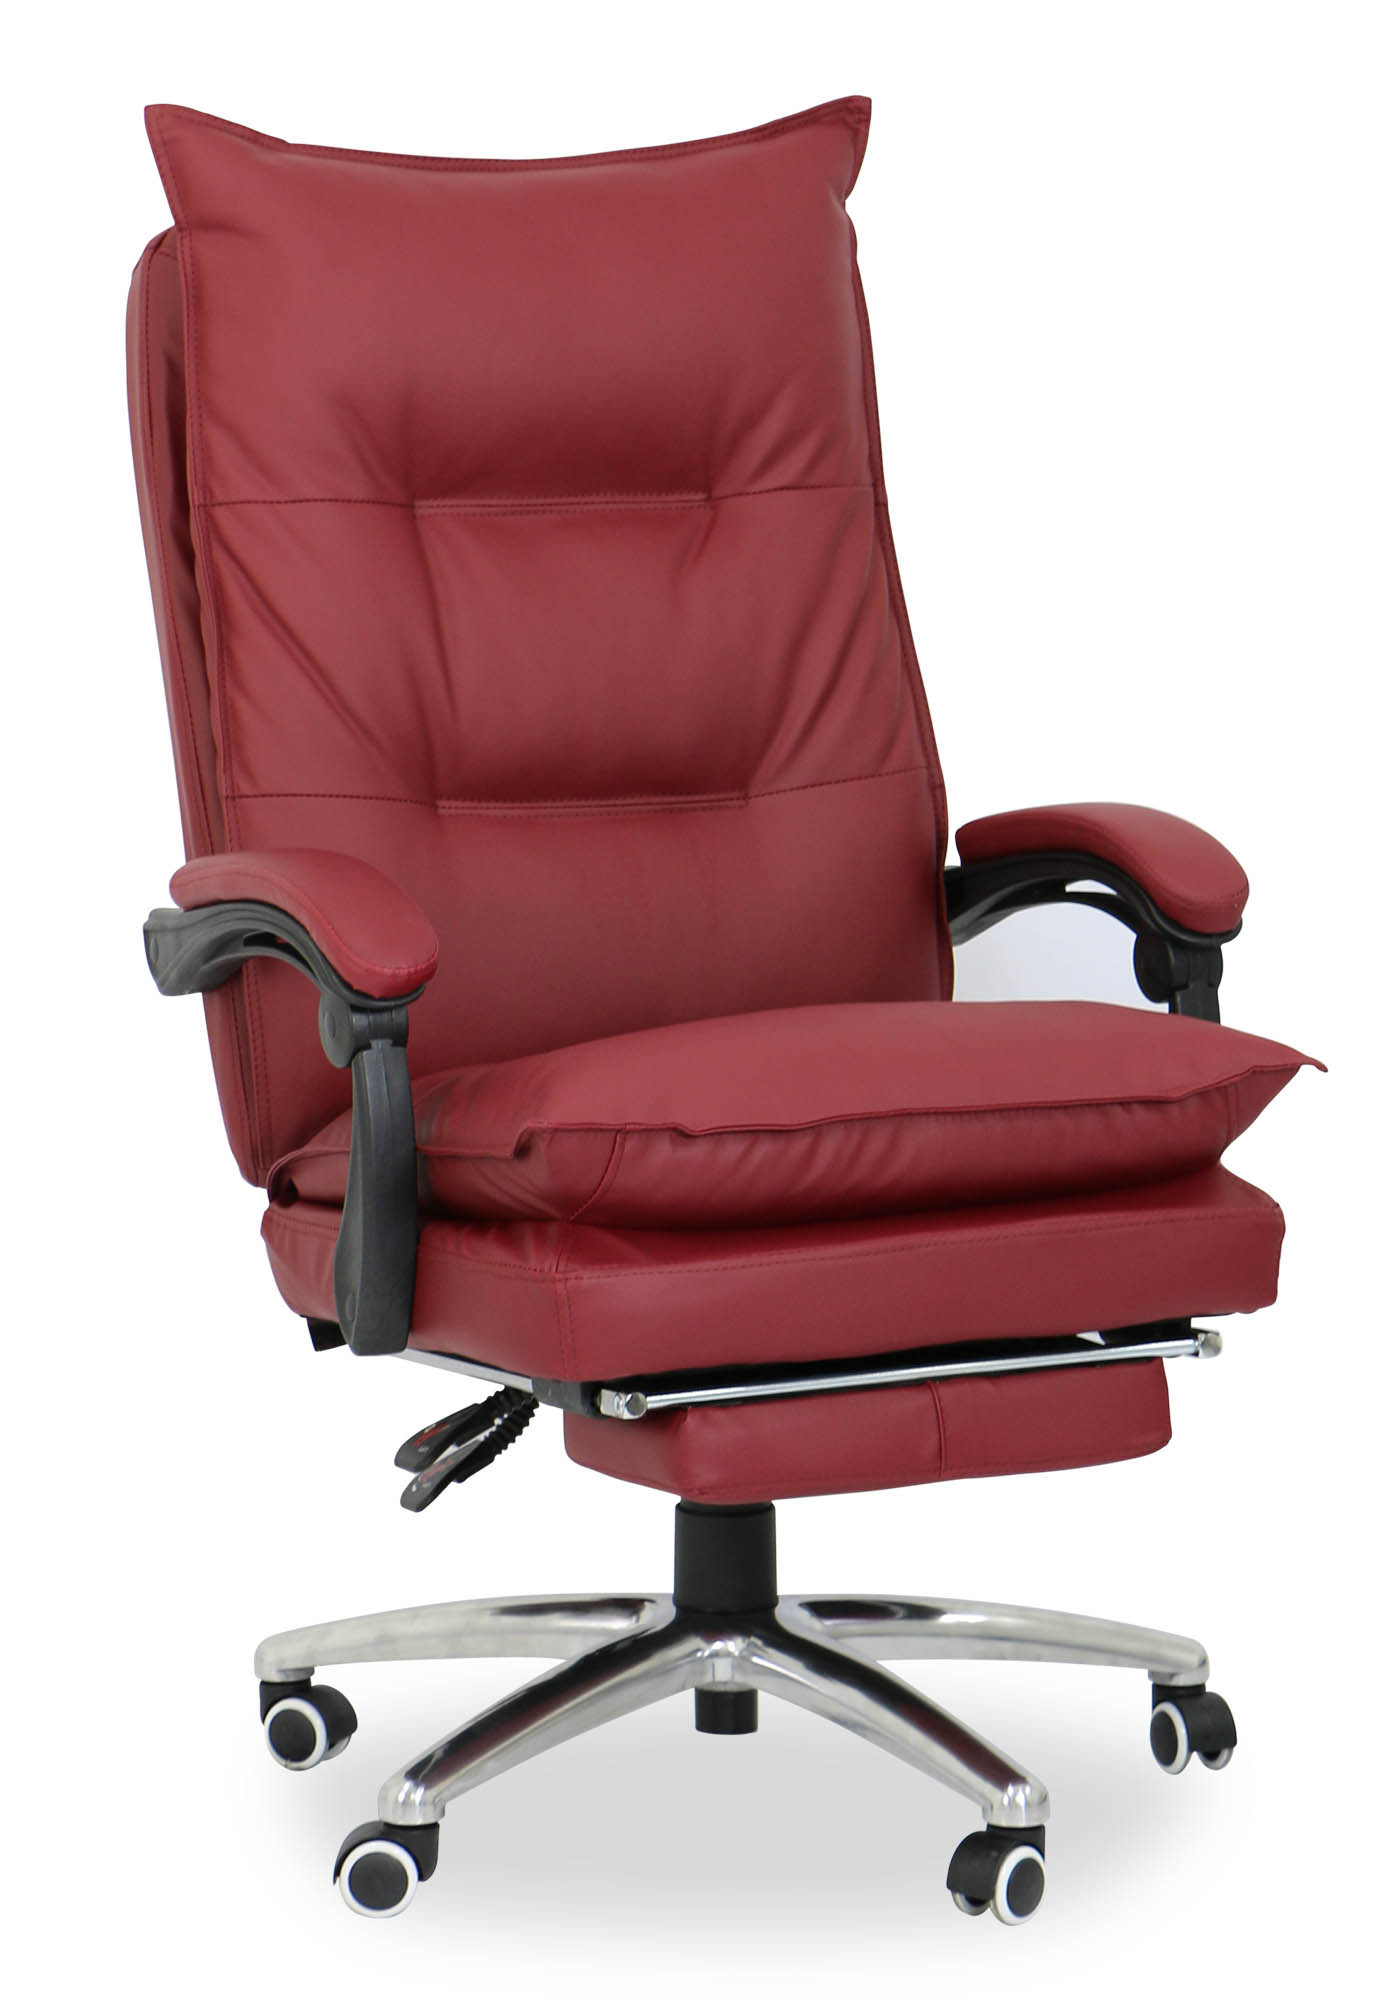 maroon office chairs wheelchair code deluxe pu executive chair furniture